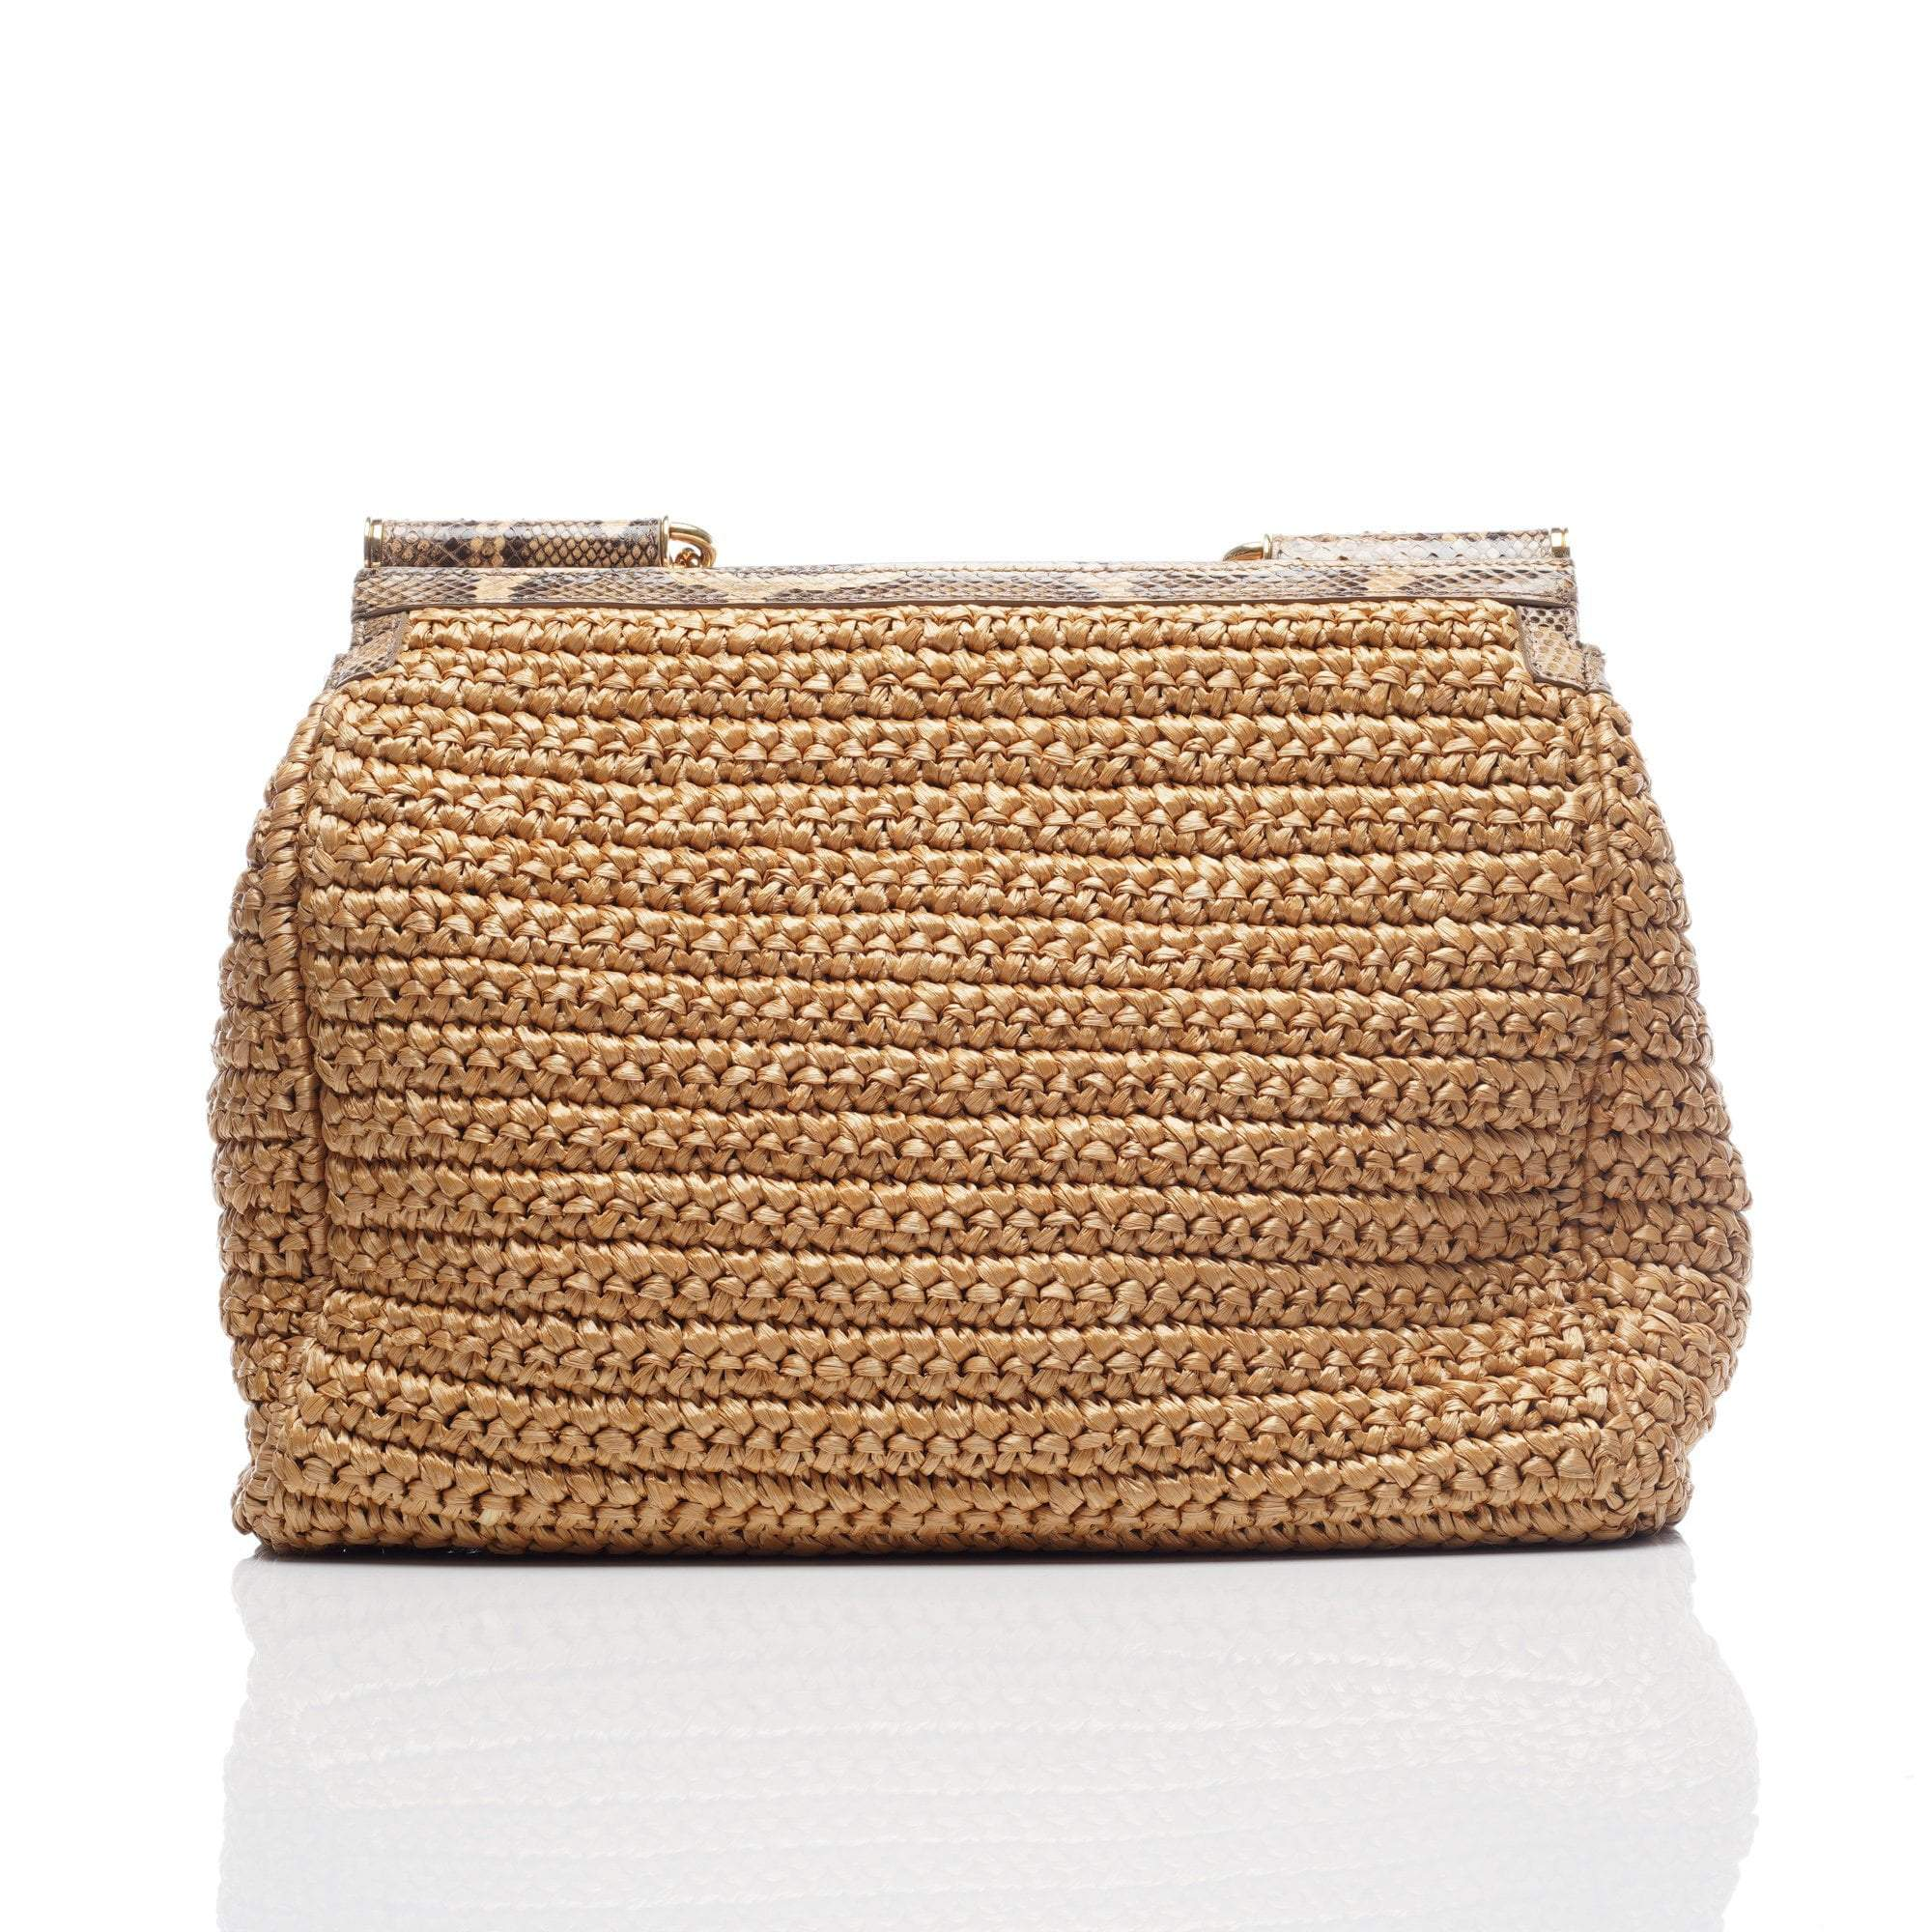 Dolce and Gabbana Miss Sicily Large Snakeskin Straw Satchel Bag